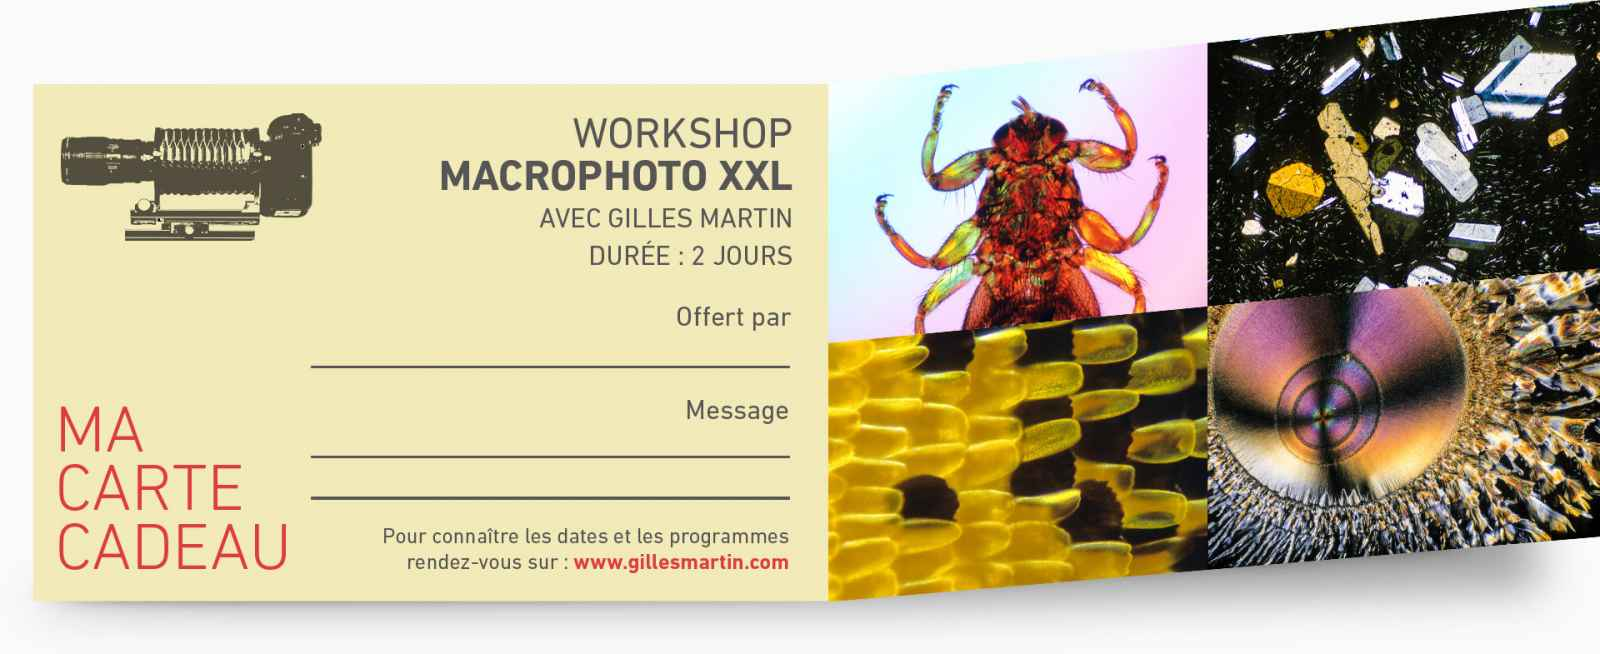 Offrez une participation au workshop du reporter photograhe Gilles Martin